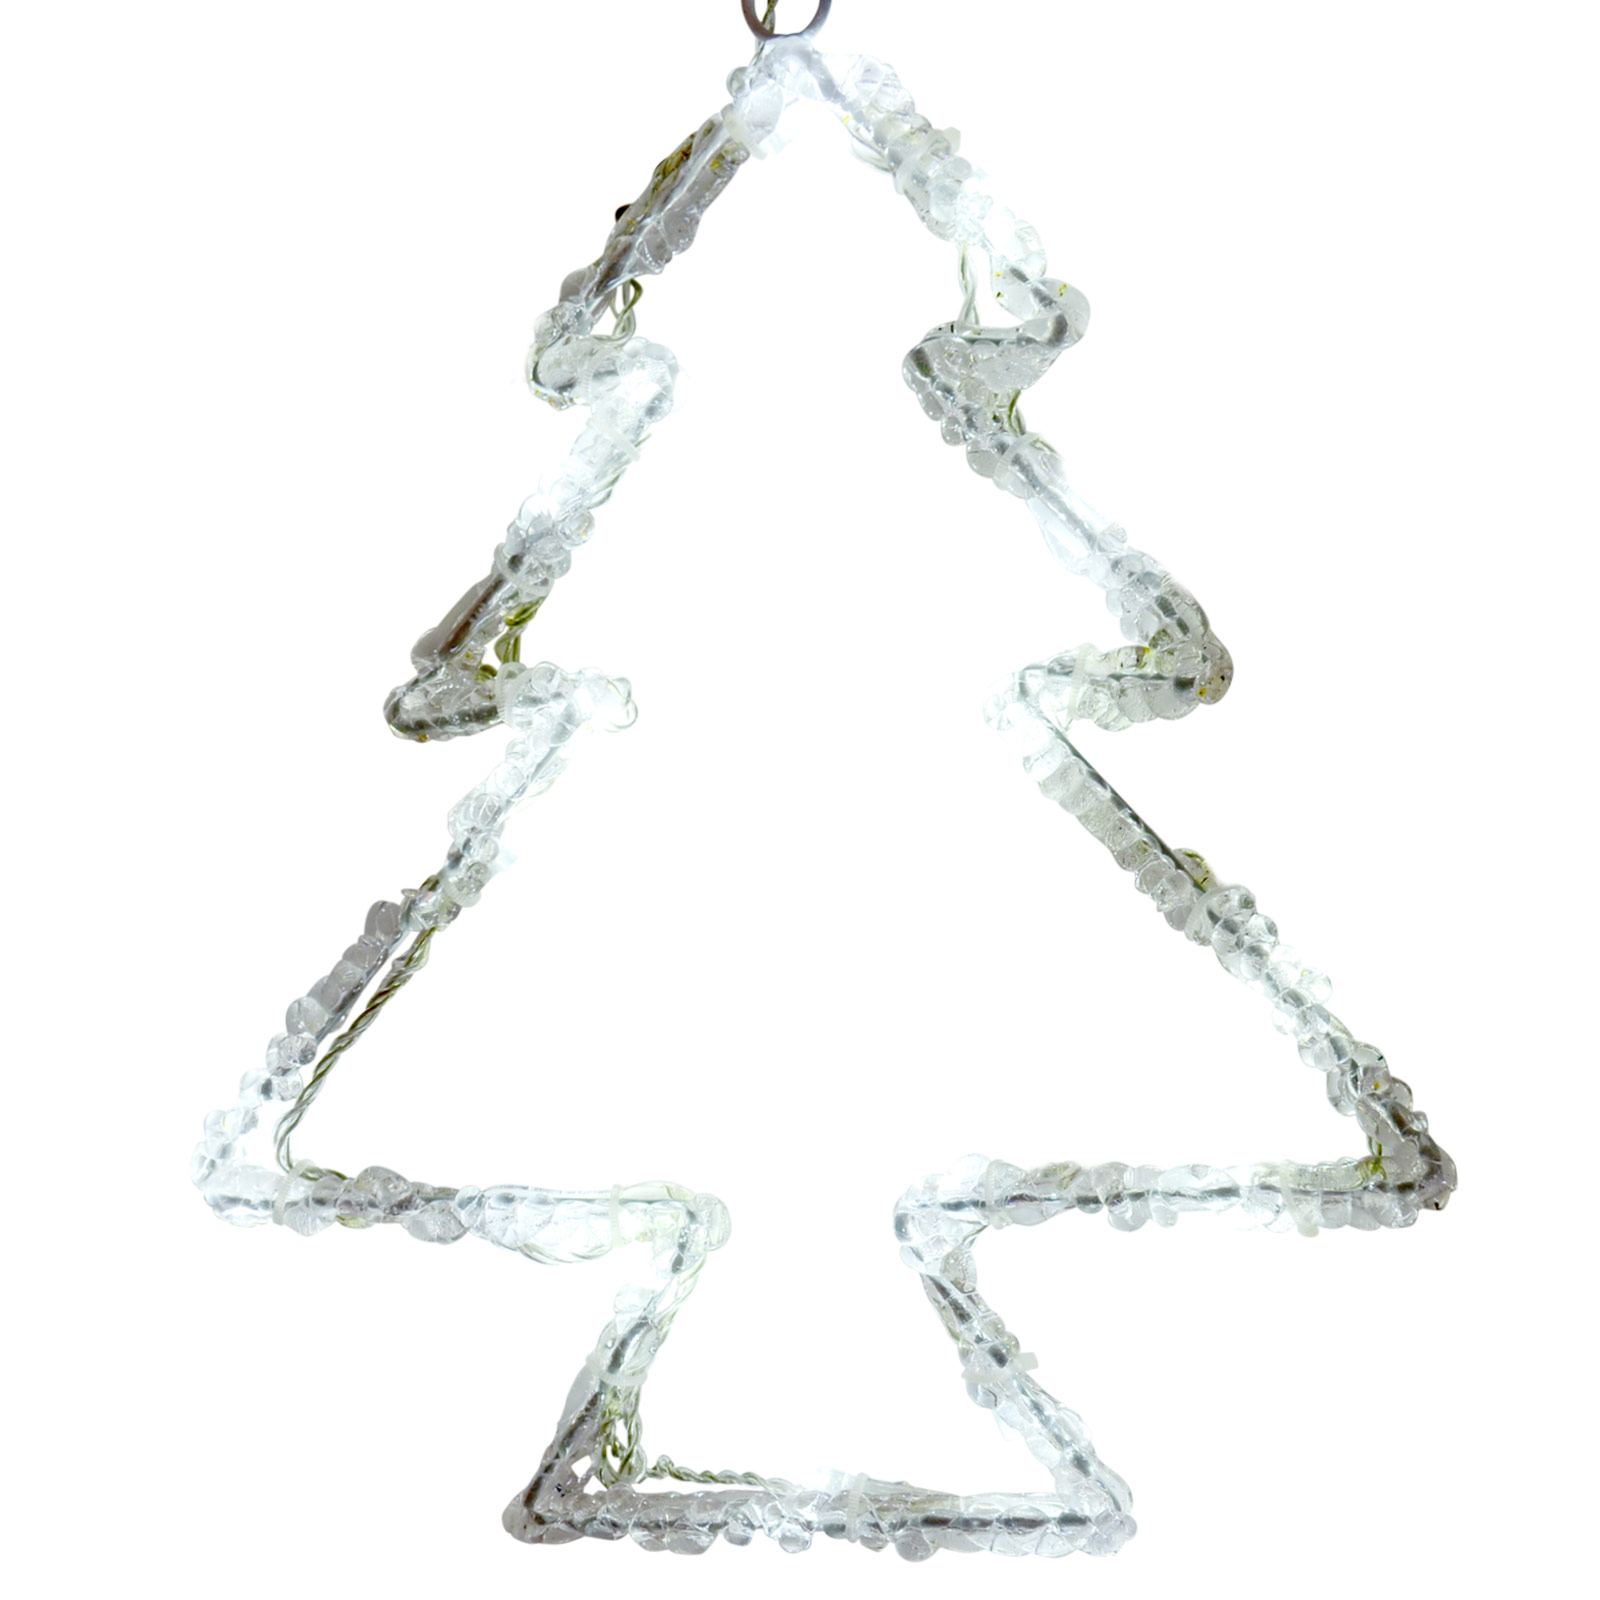 29cm Acrylic Christmas Tree Silhouette White LED Hanging Festive Xmas Decoration